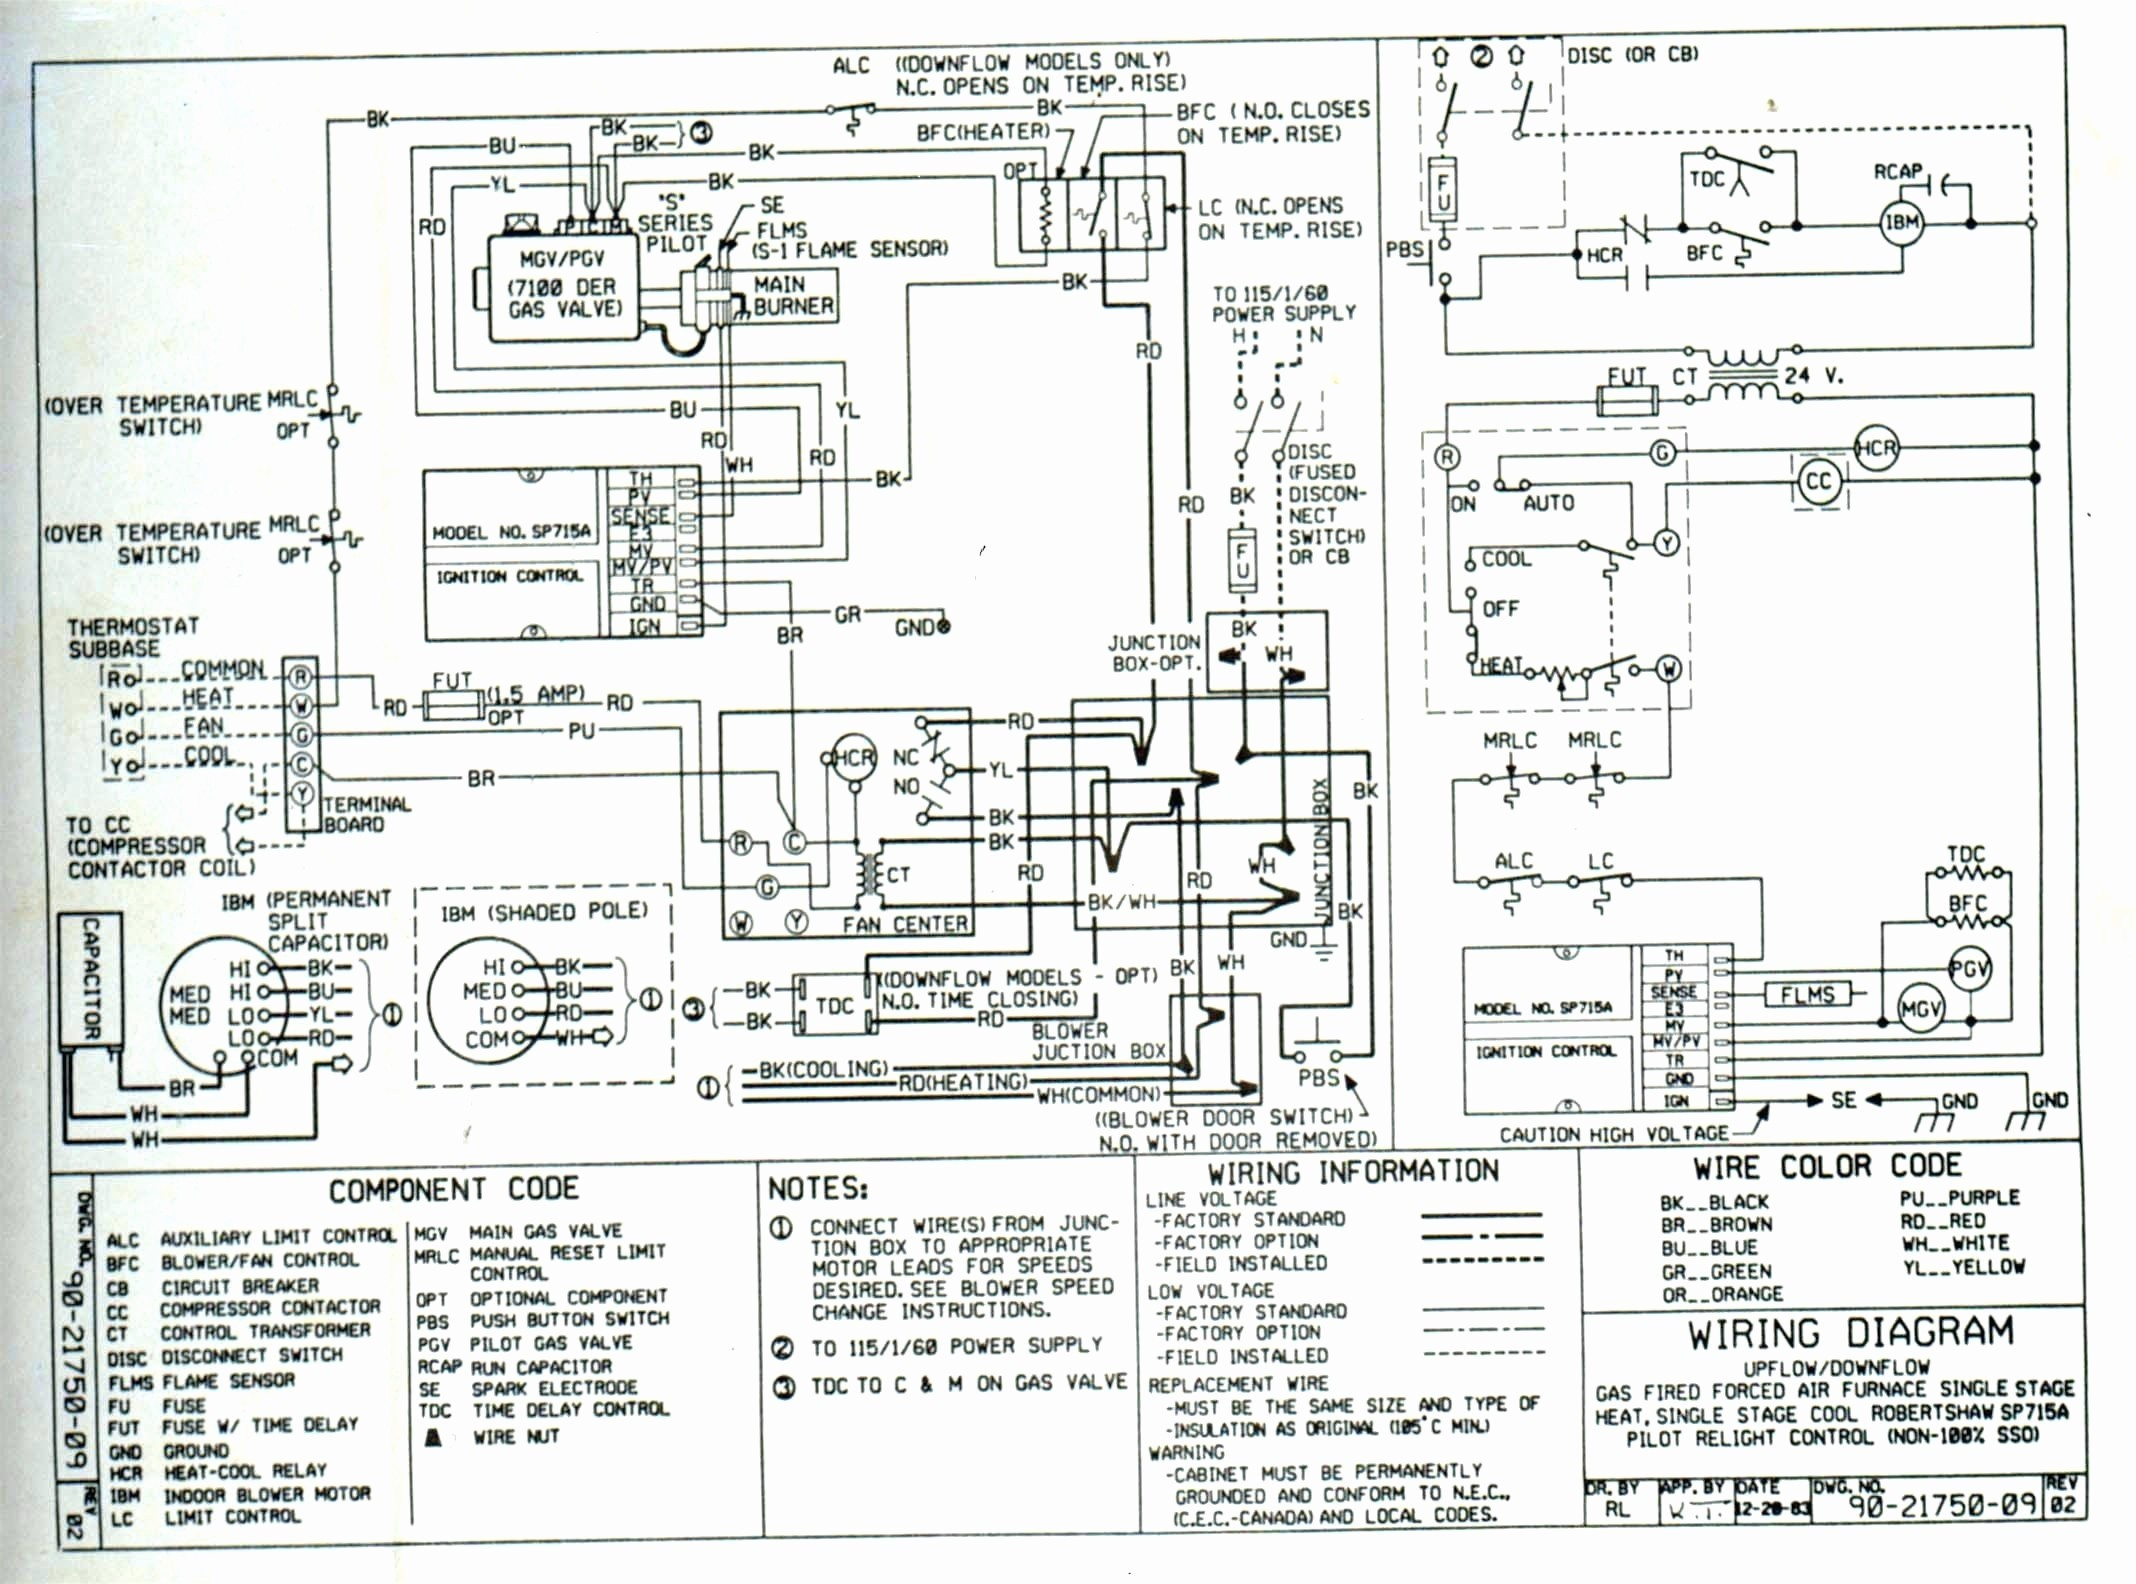 Rotary Motor Diagram Ac Gear Motor Wiring Diagram New Dayton Electric Motors Wiring Of Rotary Motor Diagram